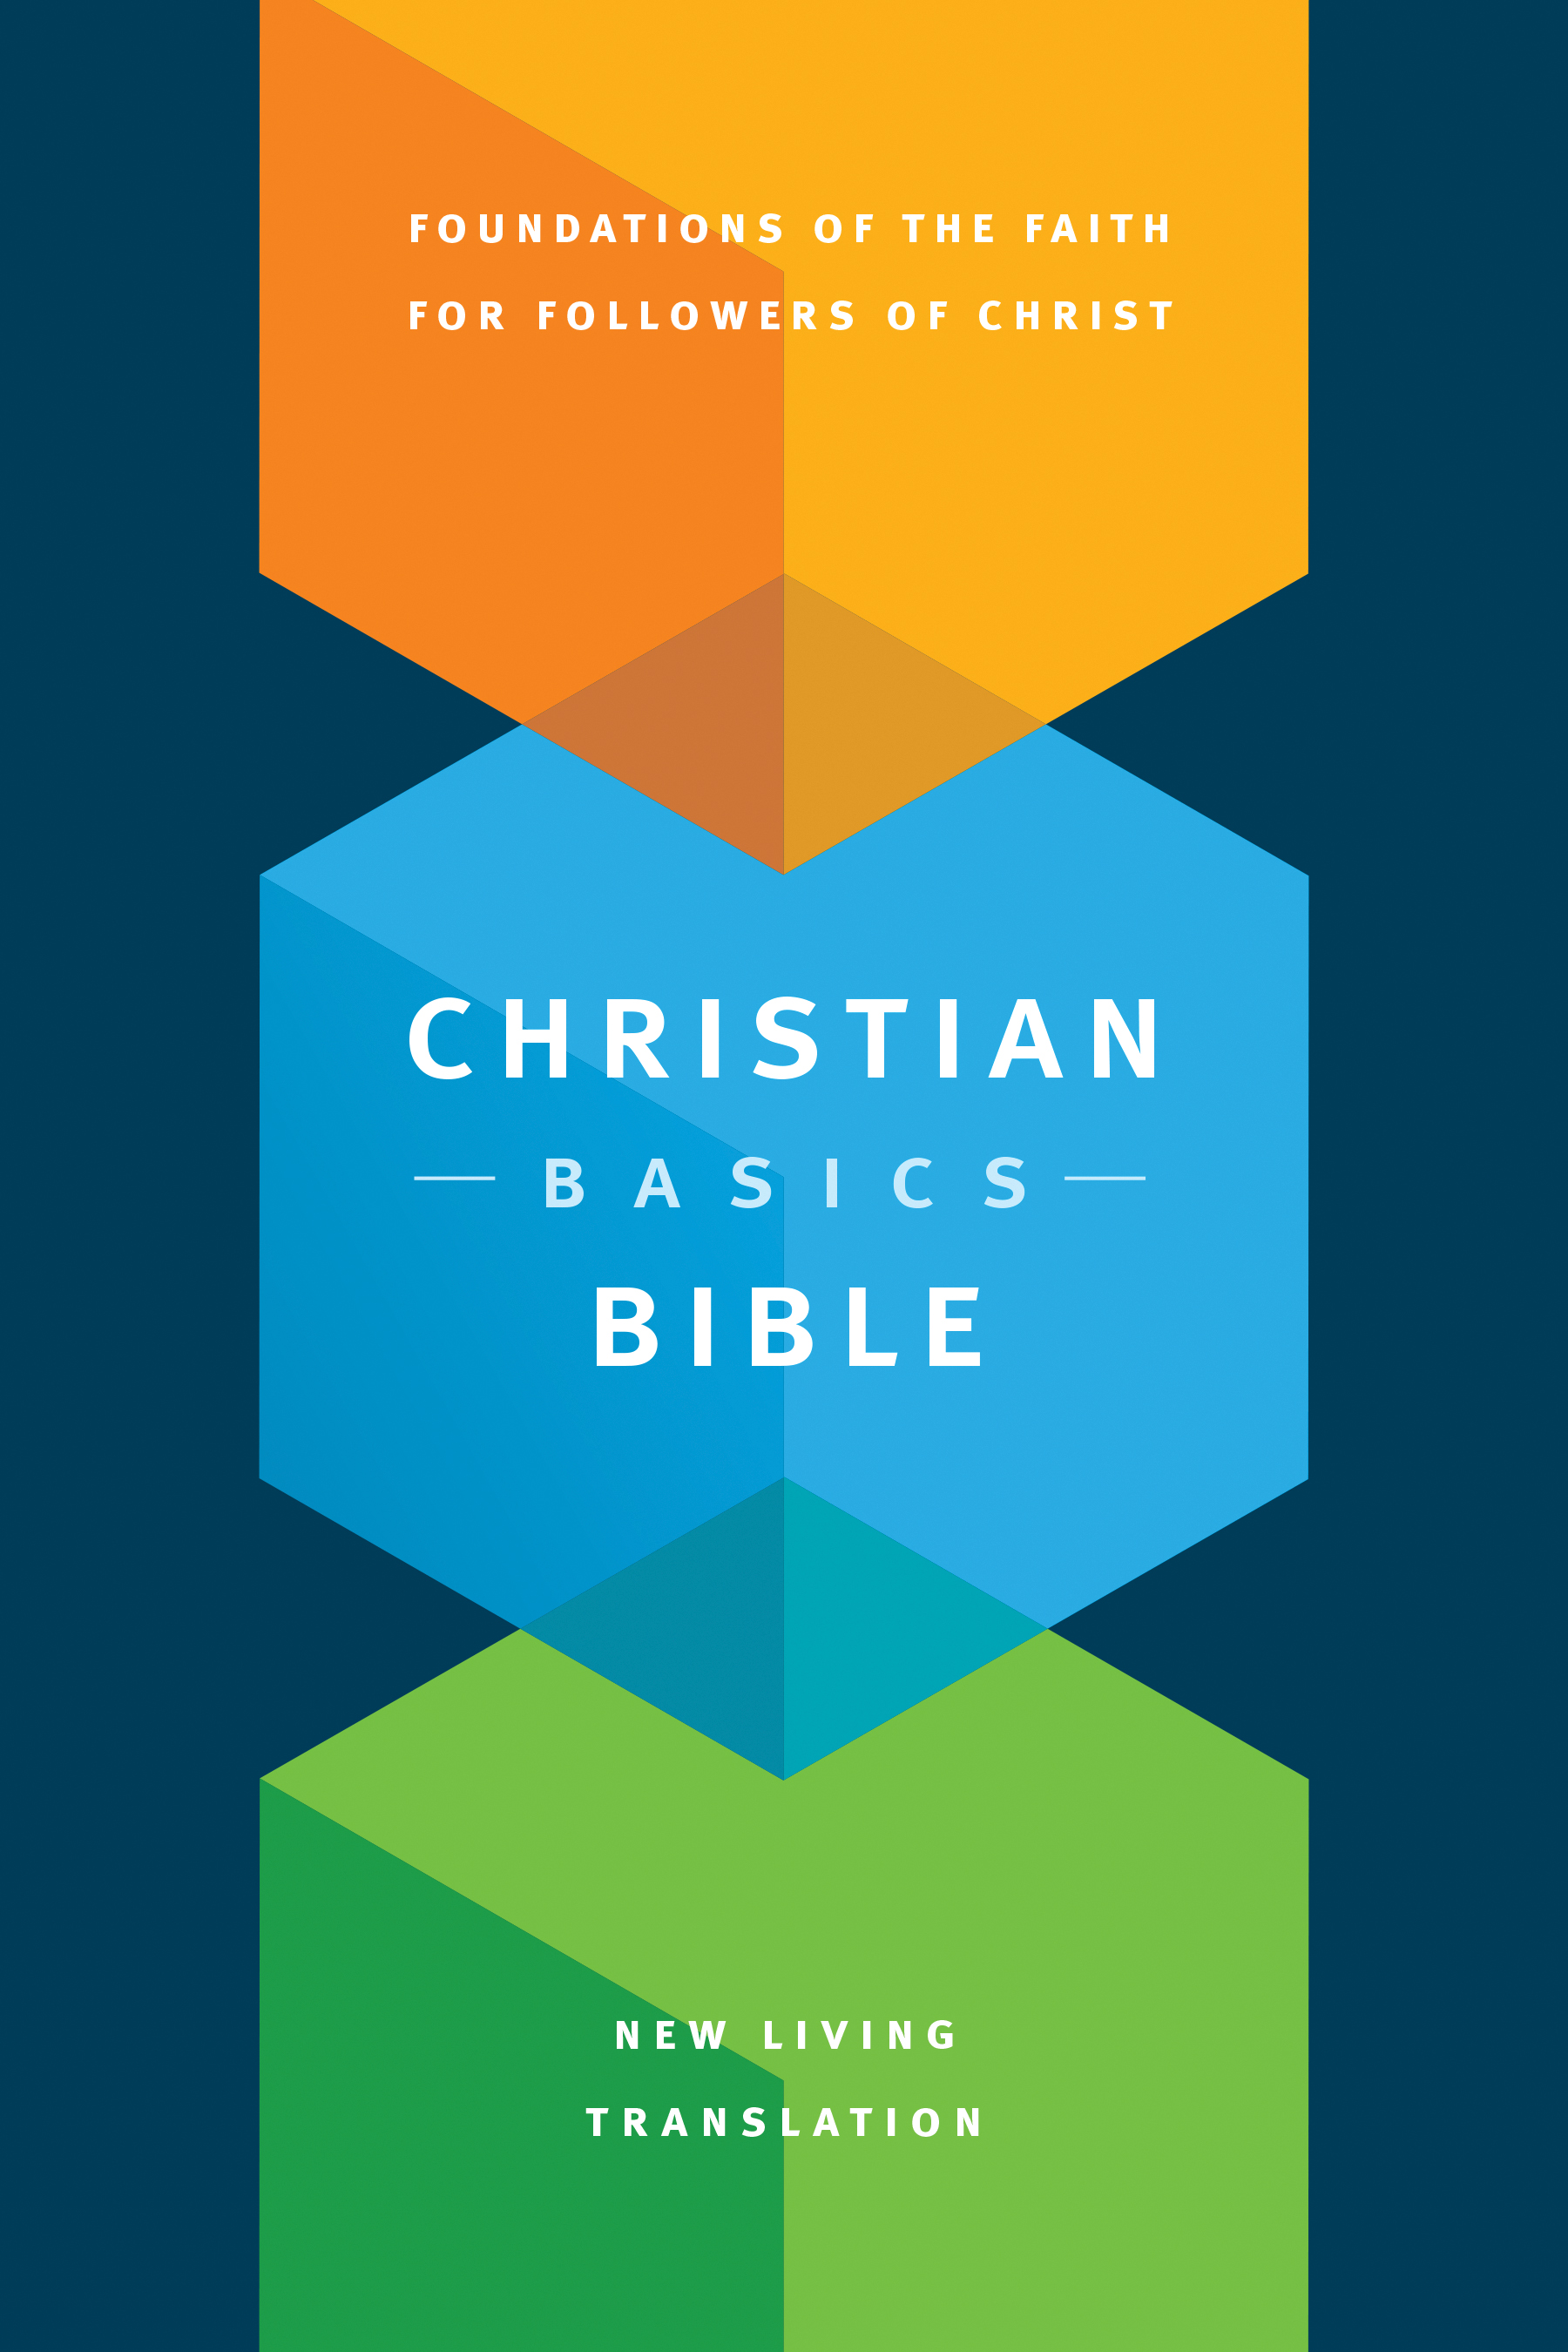 Christian reference martin manser christian basics bible new to the fandeluxe Image collections